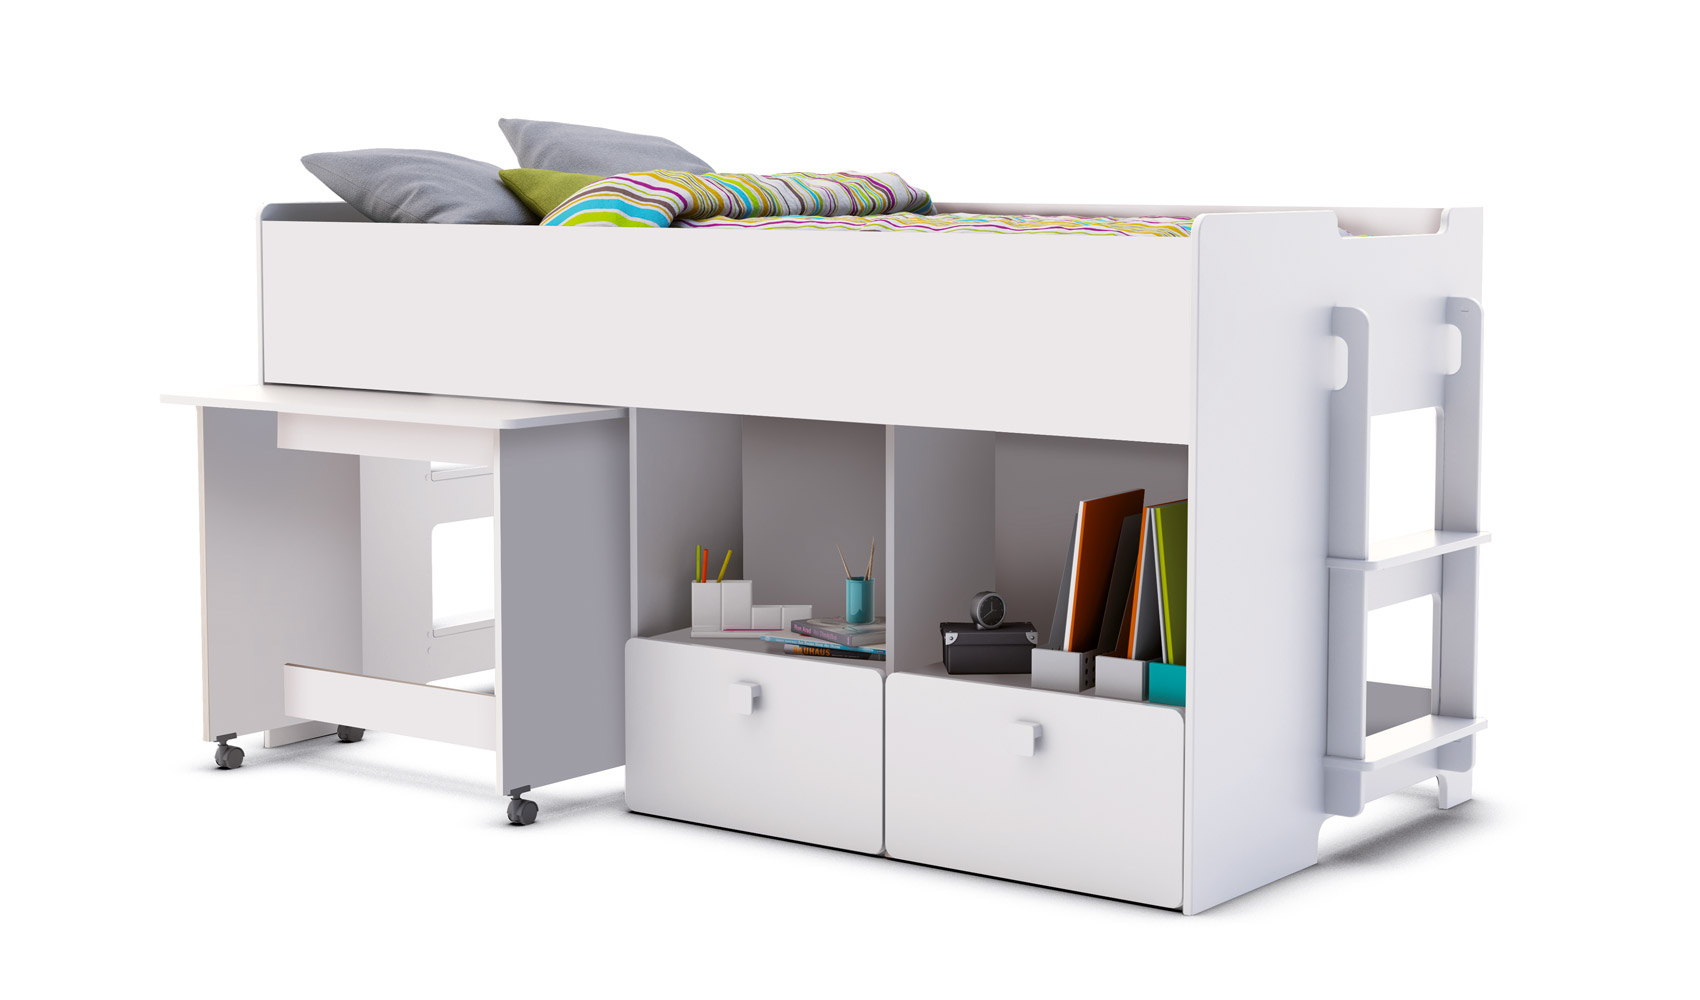 jugendbett kombibett hochbett schreibtisch bett kinderbett ebay. Black Bedroom Furniture Sets. Home Design Ideas